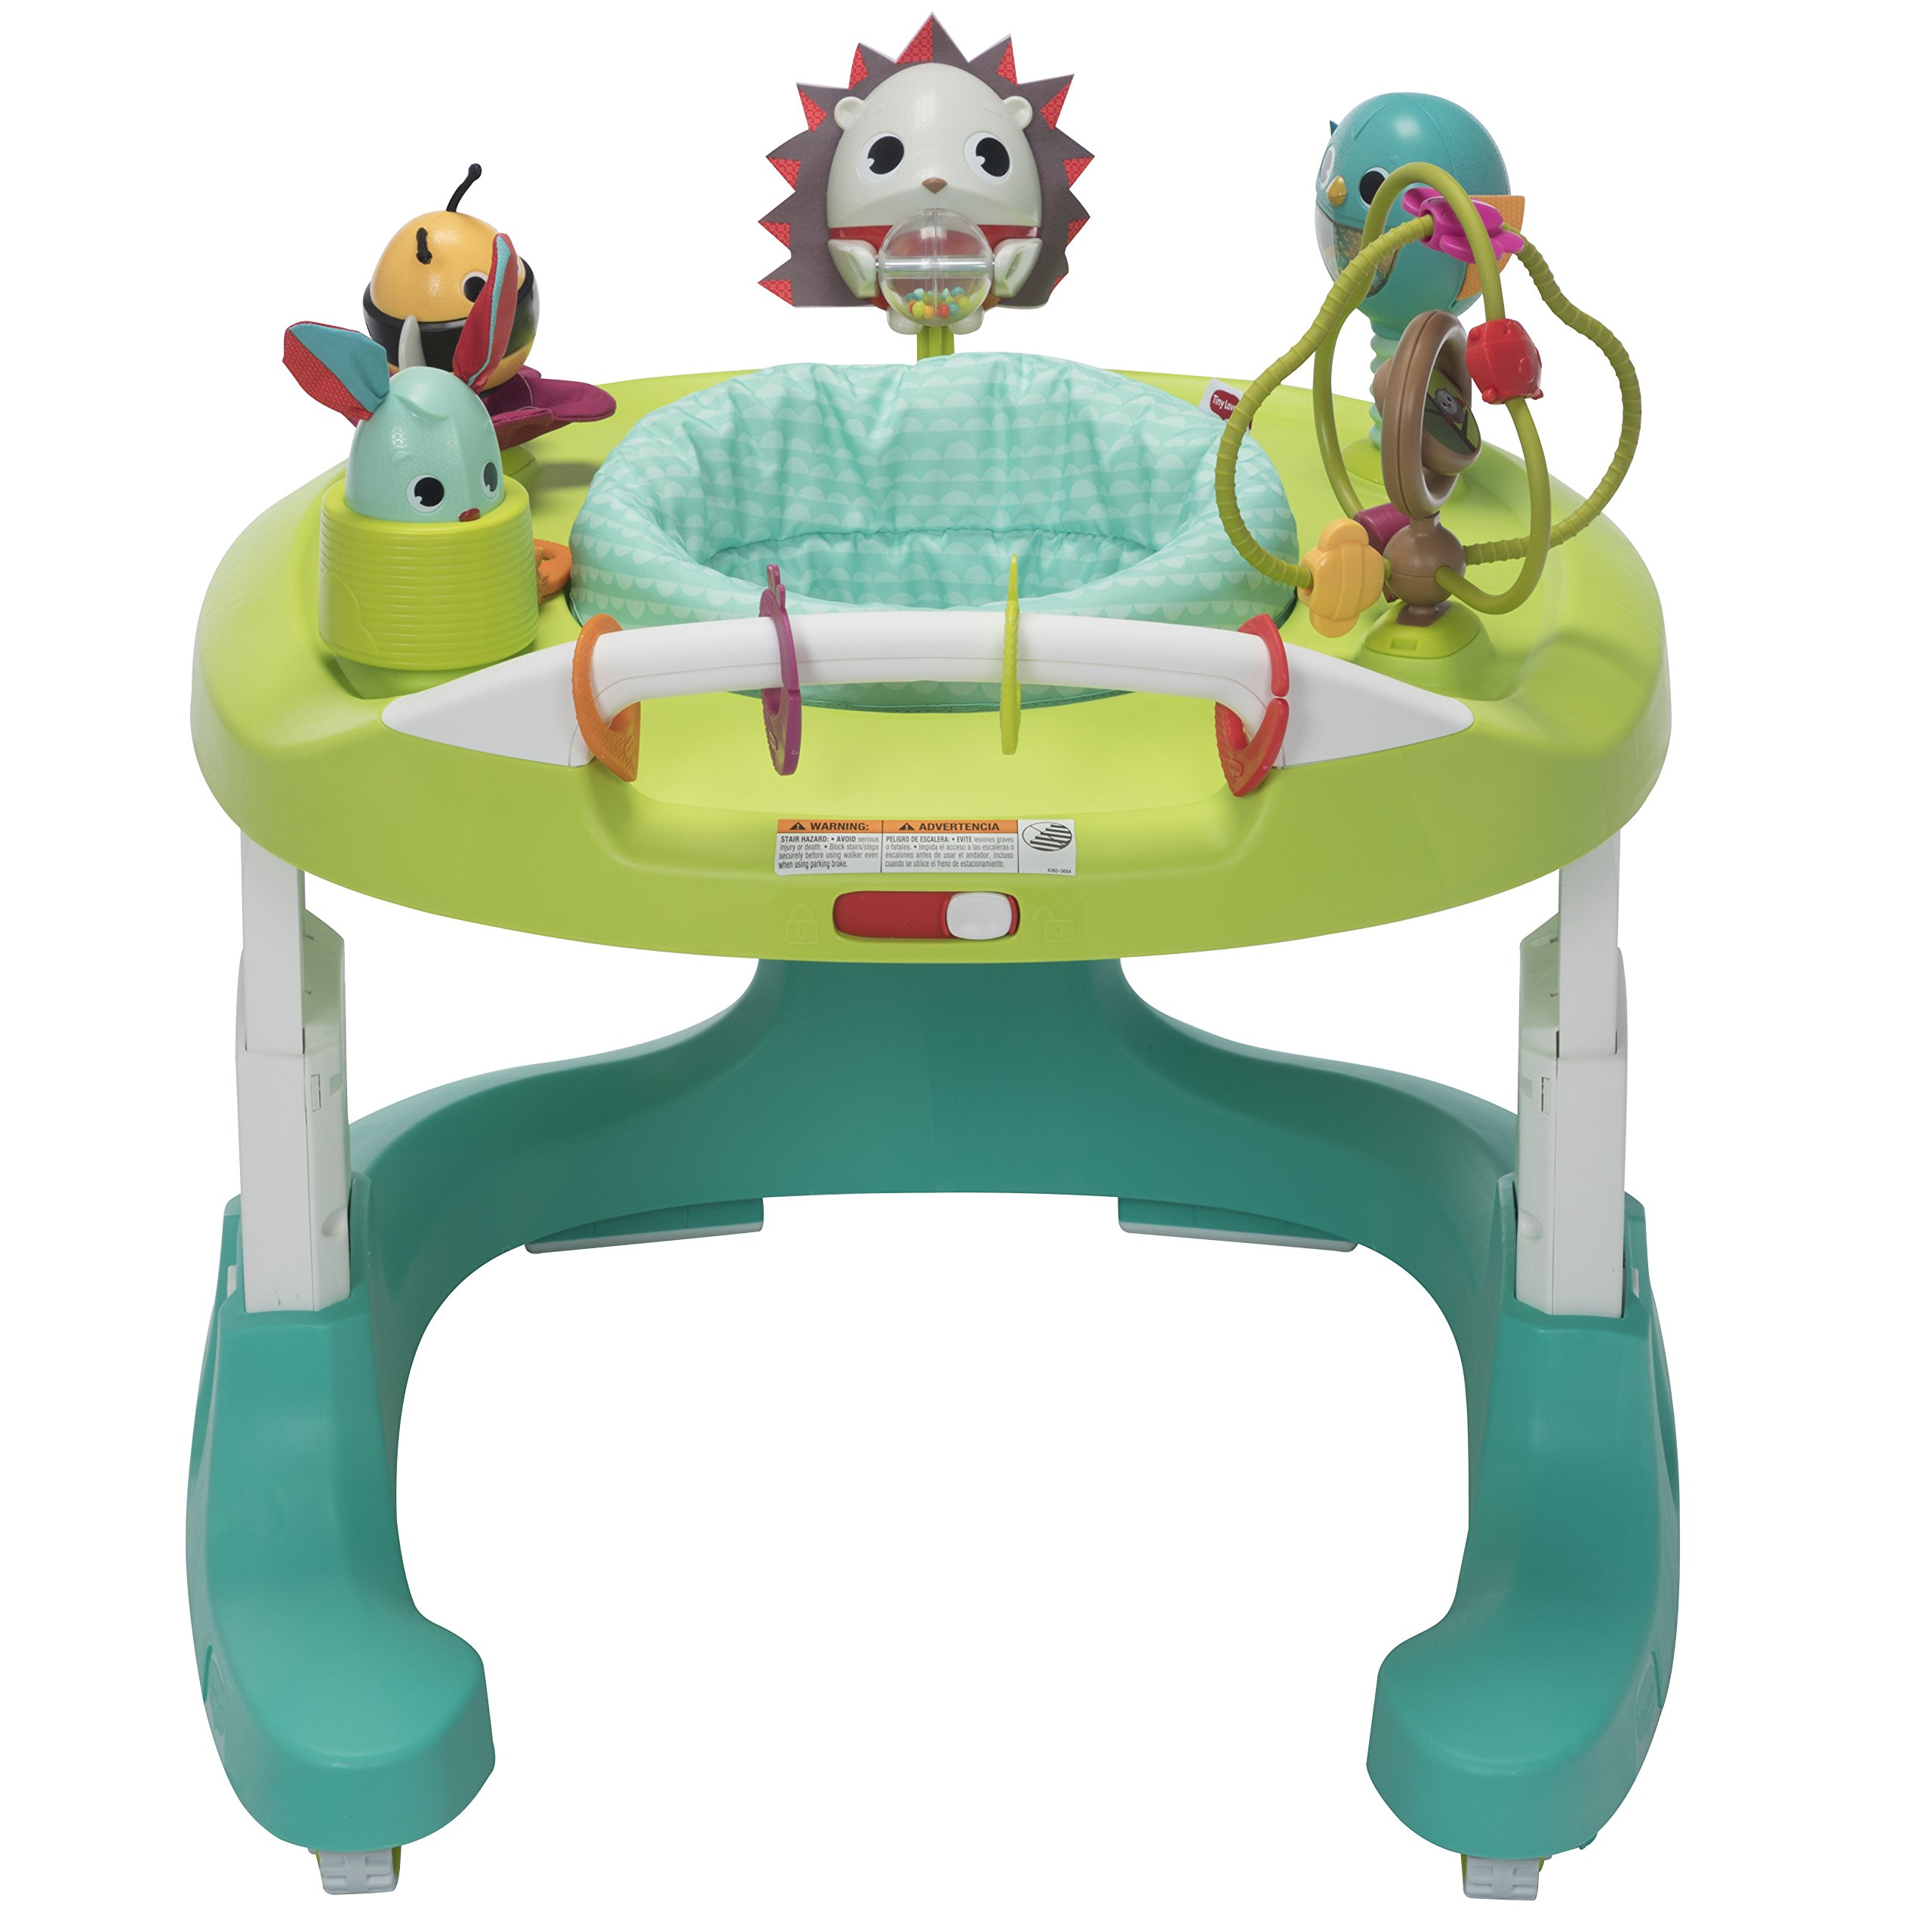 Tiny Love Meadow Days Here I Grow 4-in-1 Baby Walker and Mobile Activity Center by Tiny Love (Image #10)